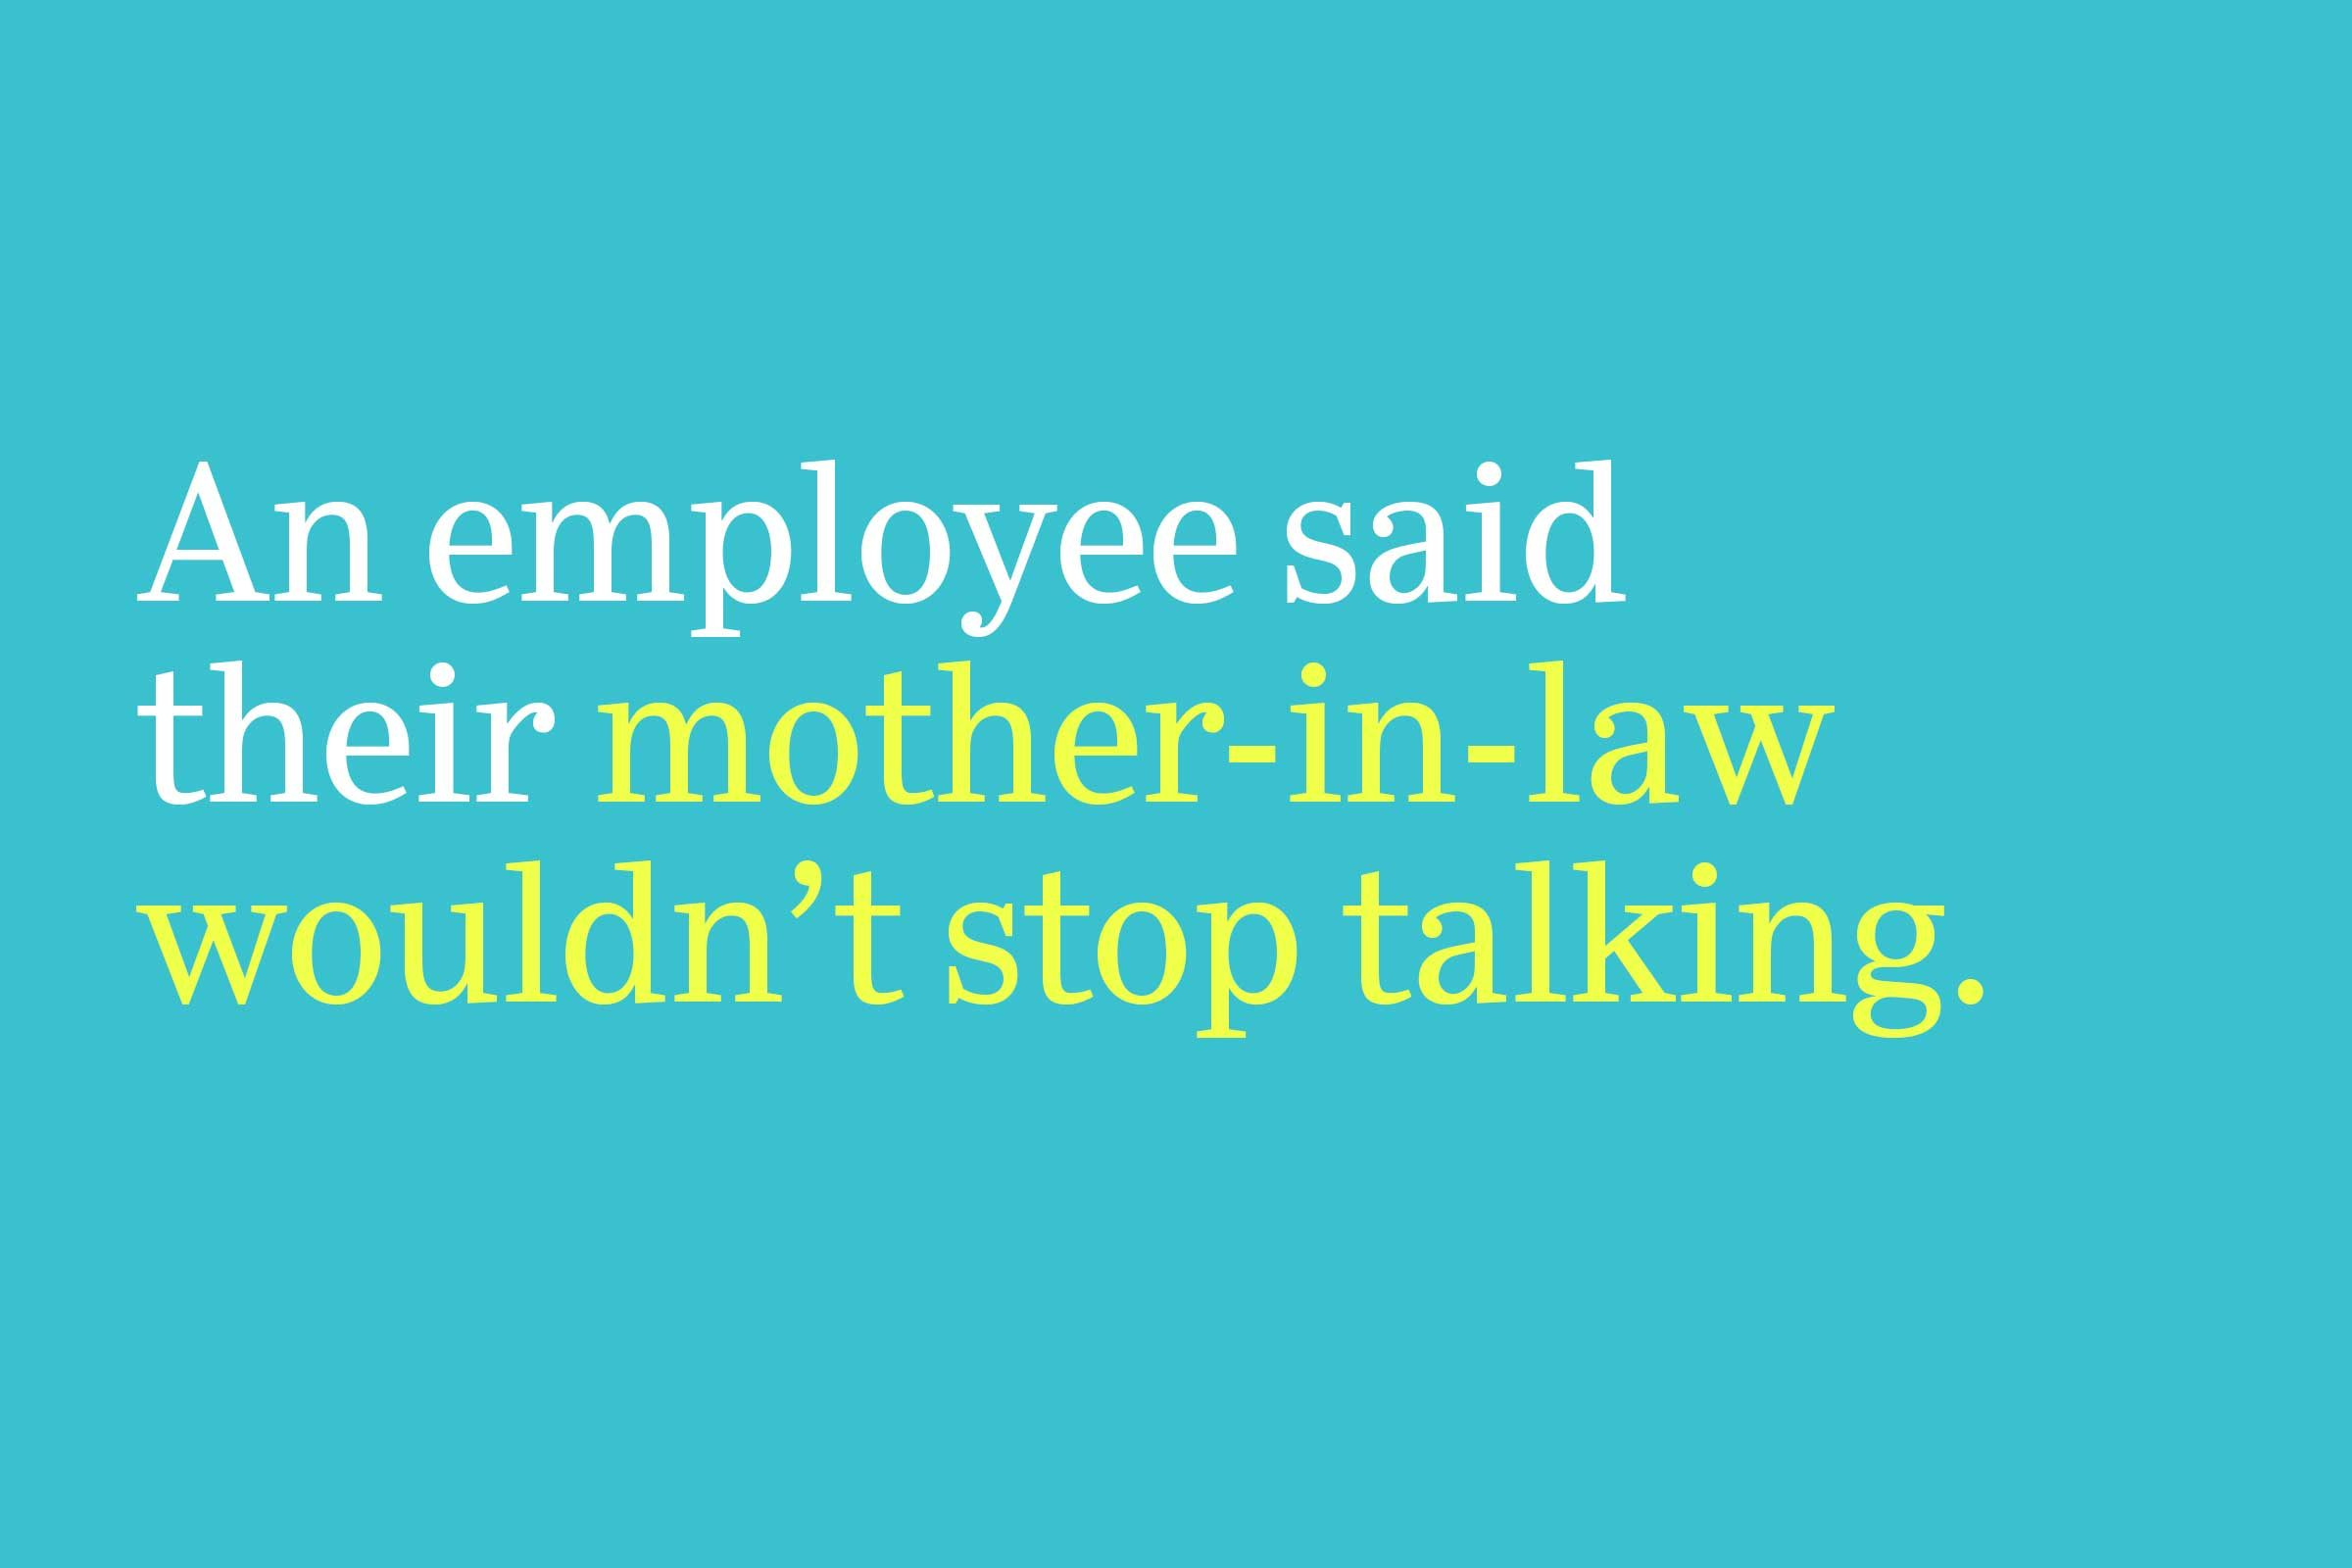 mother-in-law wouldn't stop talking